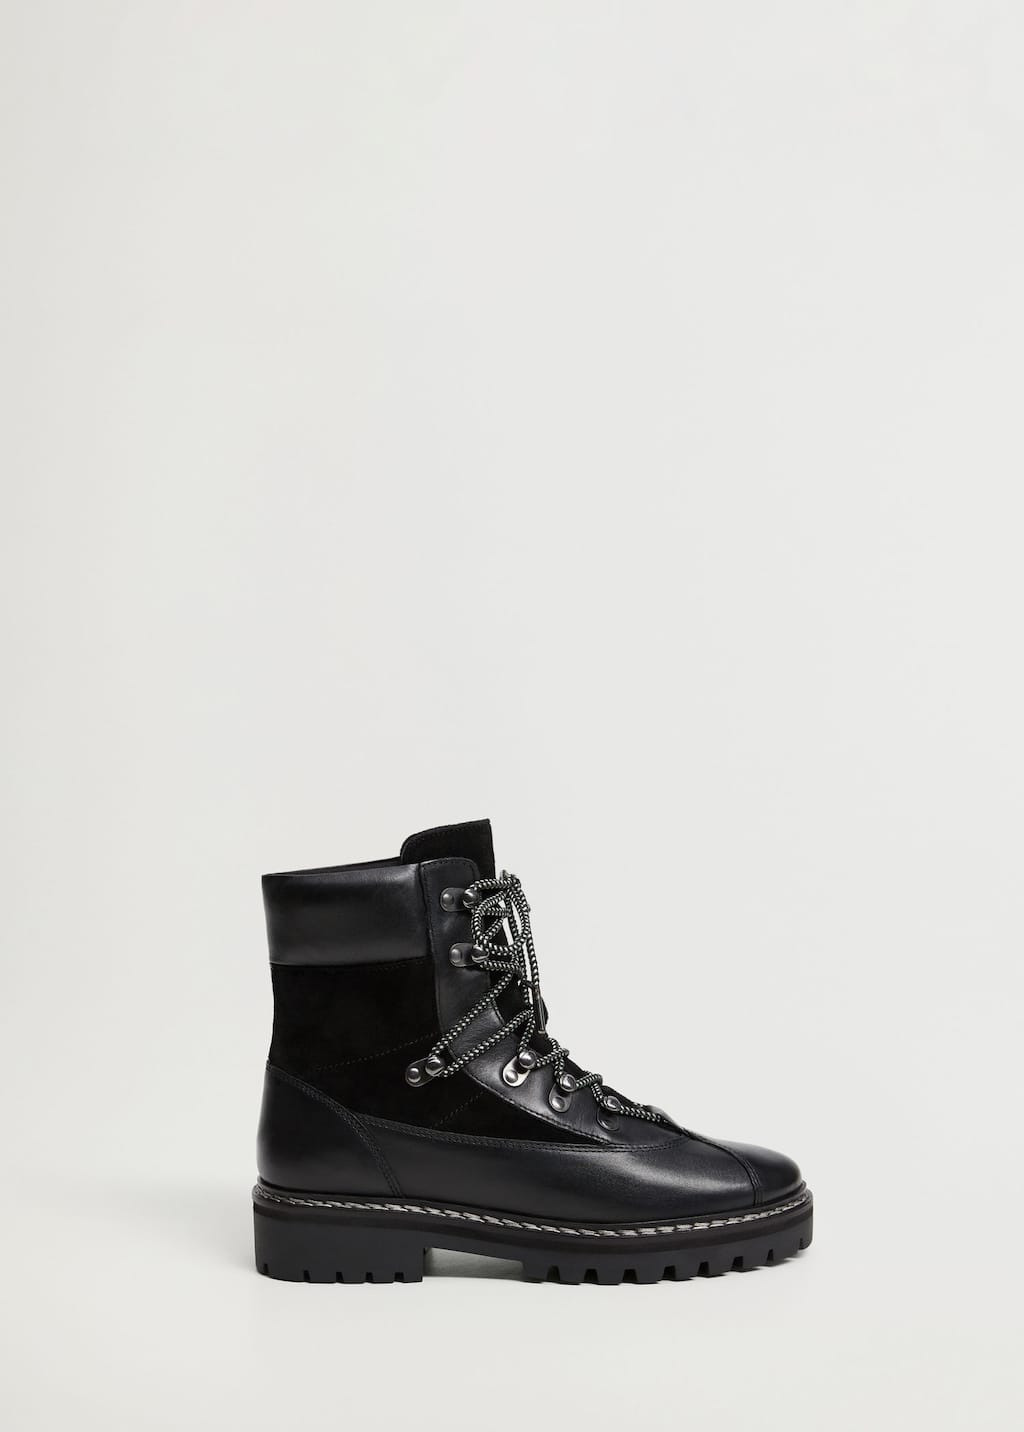 Contrast lace-up leather boots - Article without model